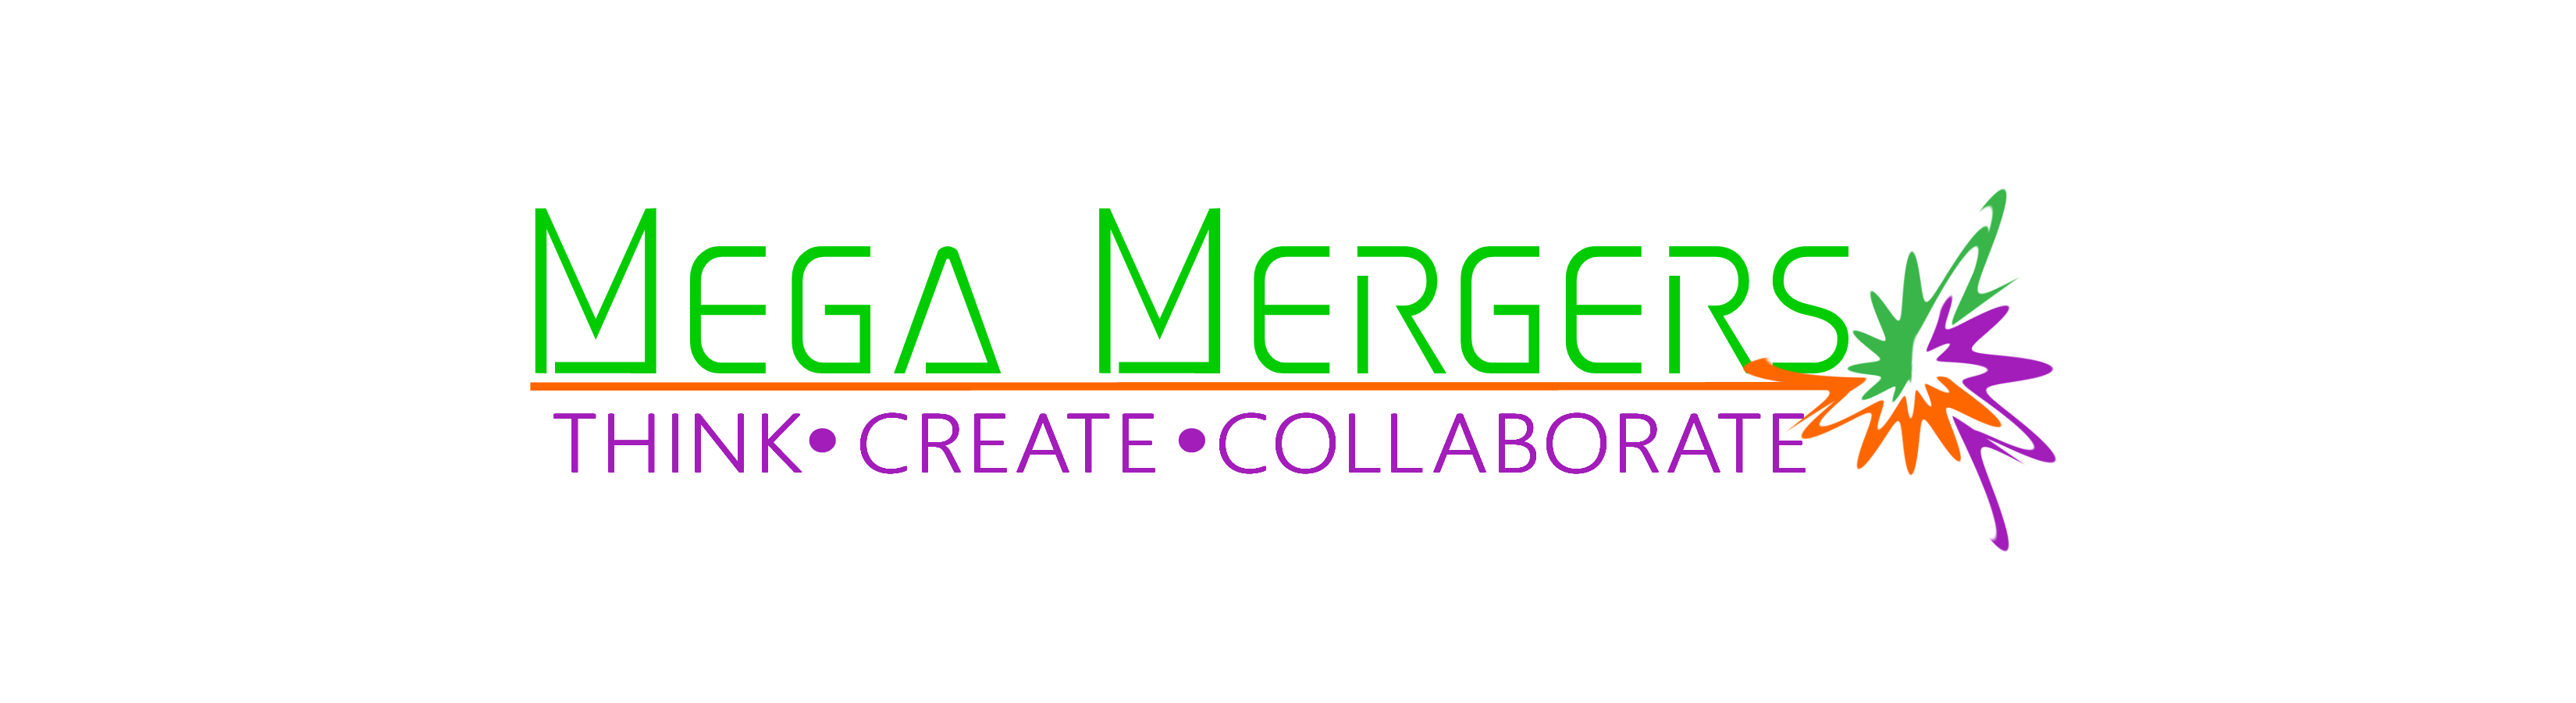 Mega Mergers Programs